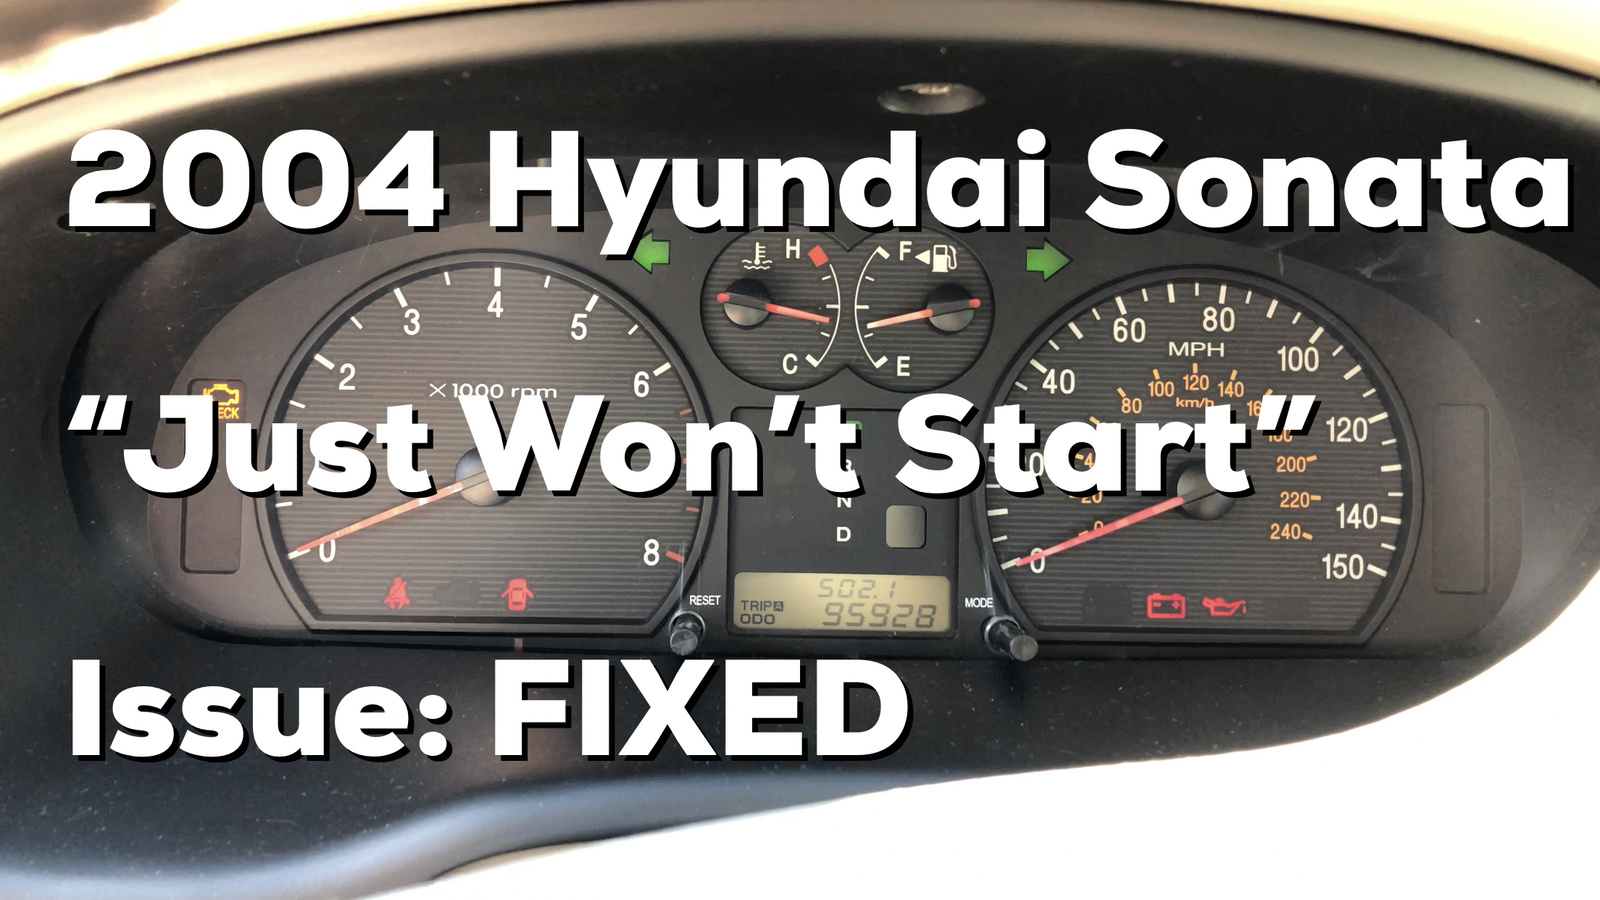 ... Hyundai Sonata intermittent start issue: https://youtu.be/muqrsTeXico  If the link to the video doesn't work, search for user nperspective on  YouTube and ...